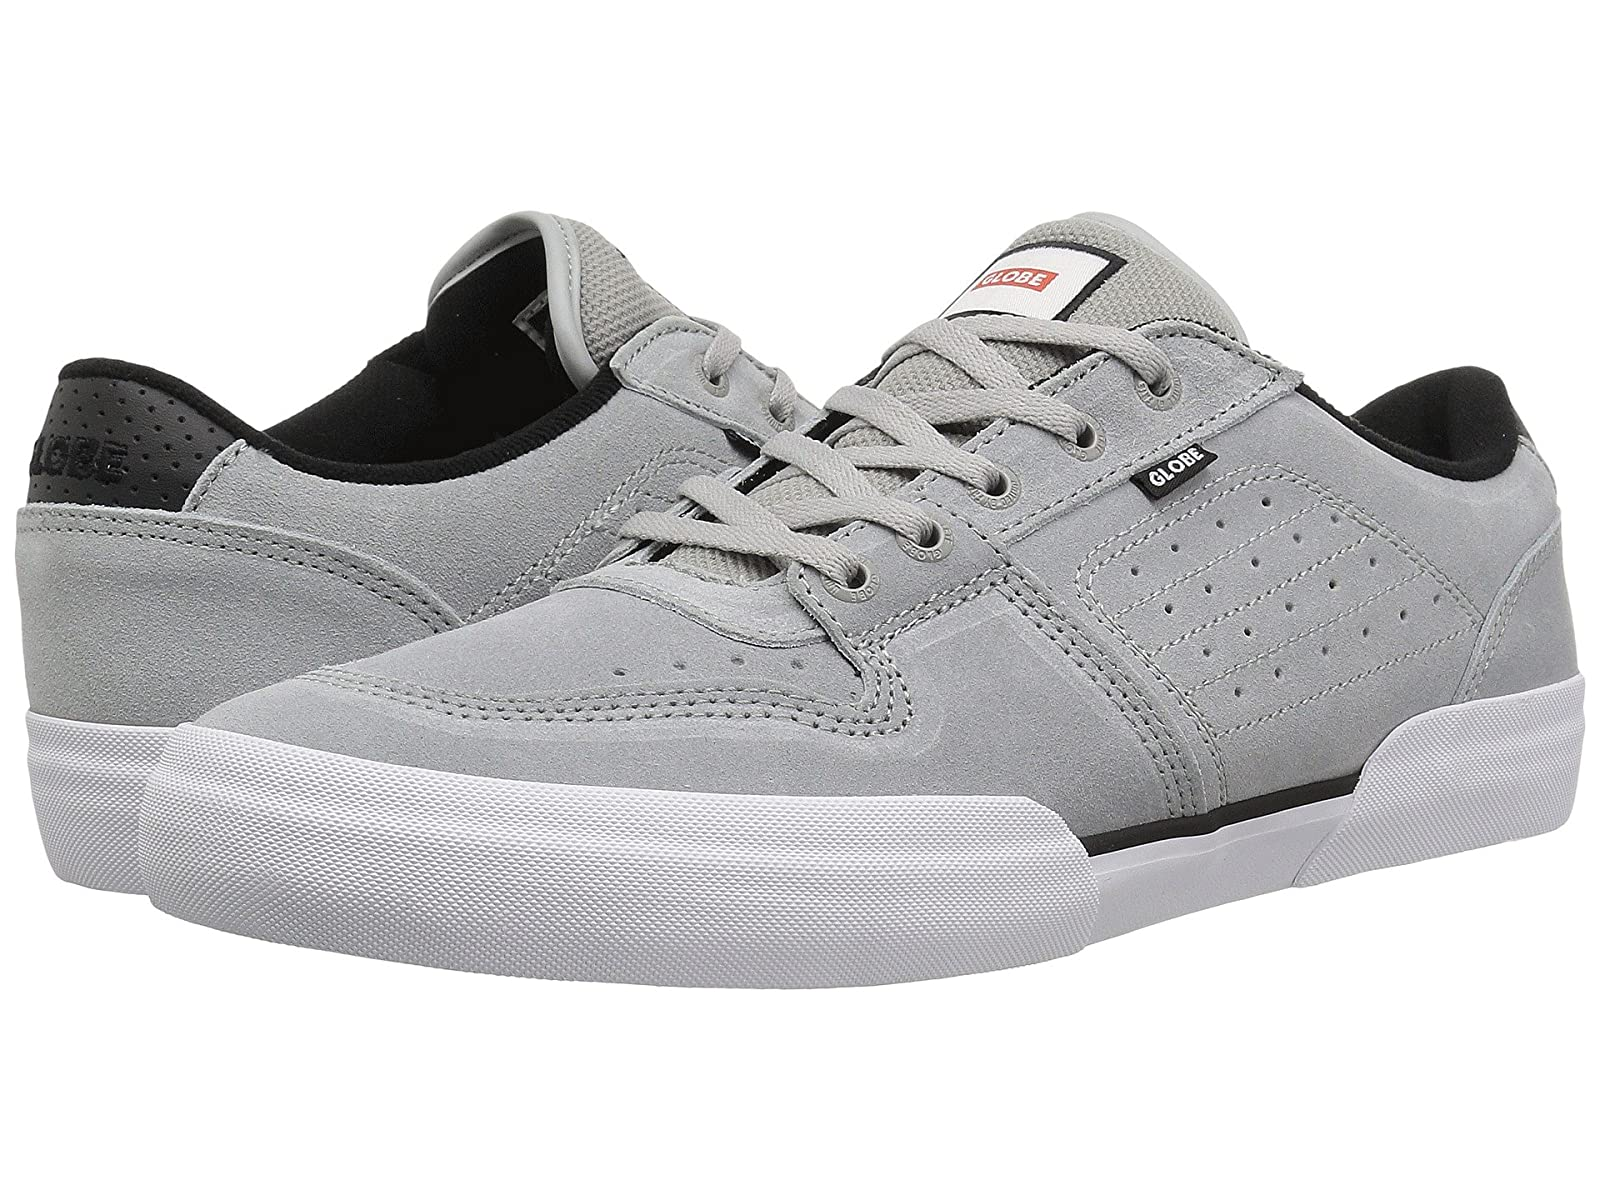 Globe Mojo LegacyAtmospheric grades have affordable shoes